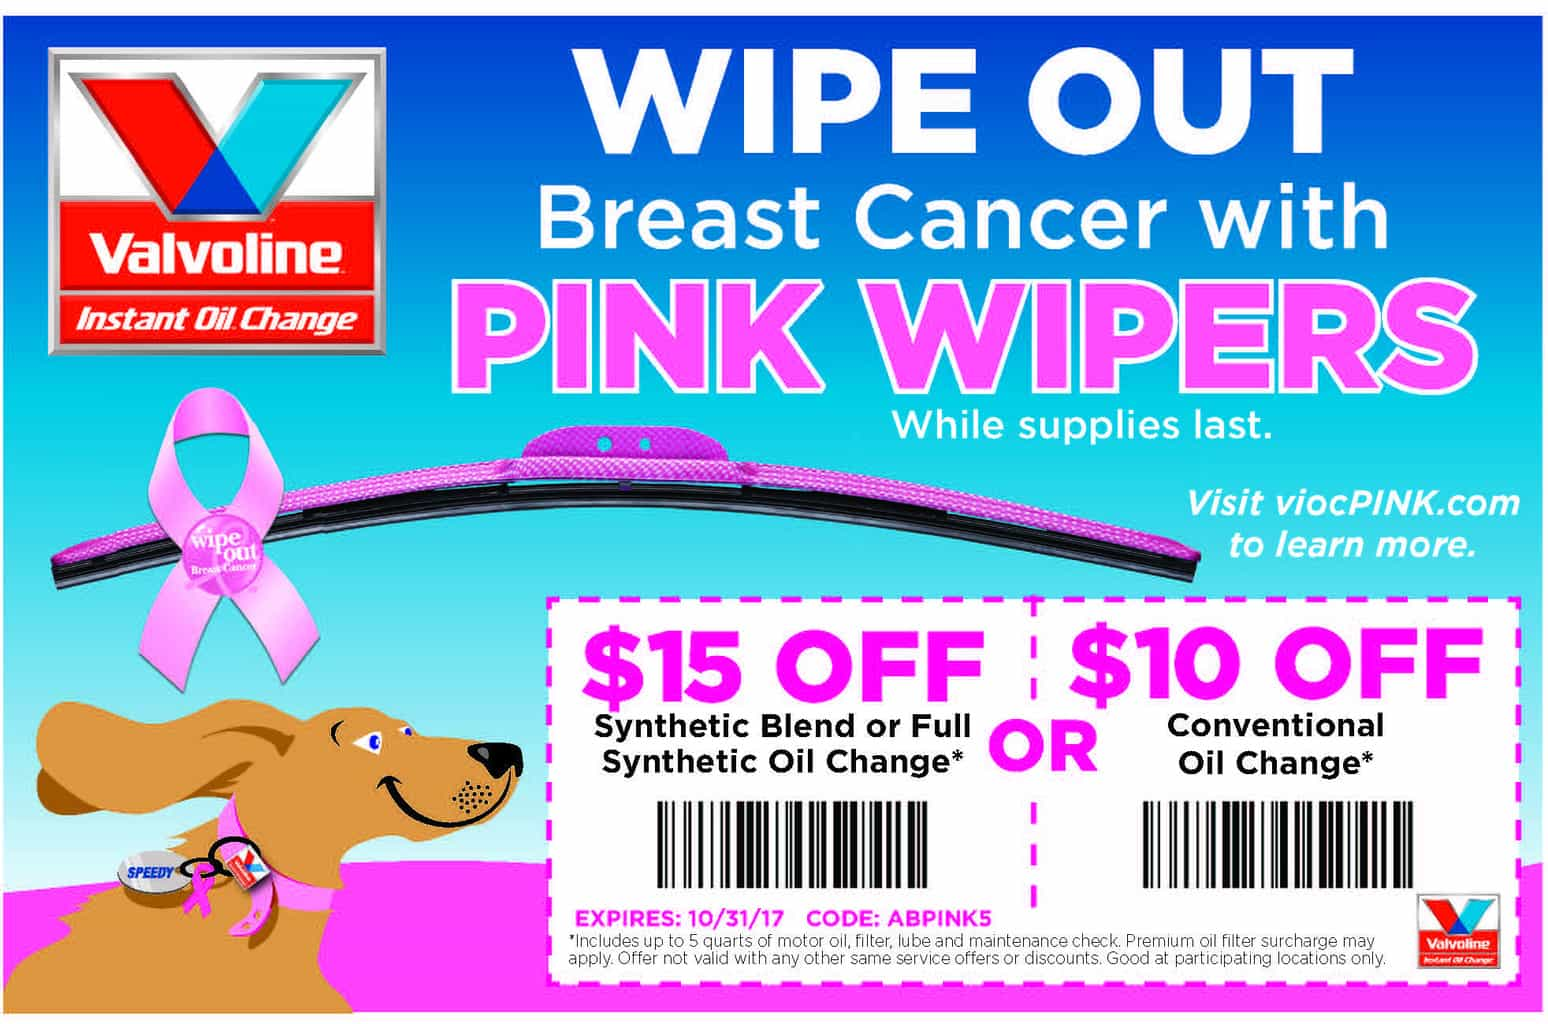 Support Breast Cancer Awareness Monthy by purchasing limited edition AutoTex PINK Wipers from select Valvoline Instant Oil Change locations now through October 31.